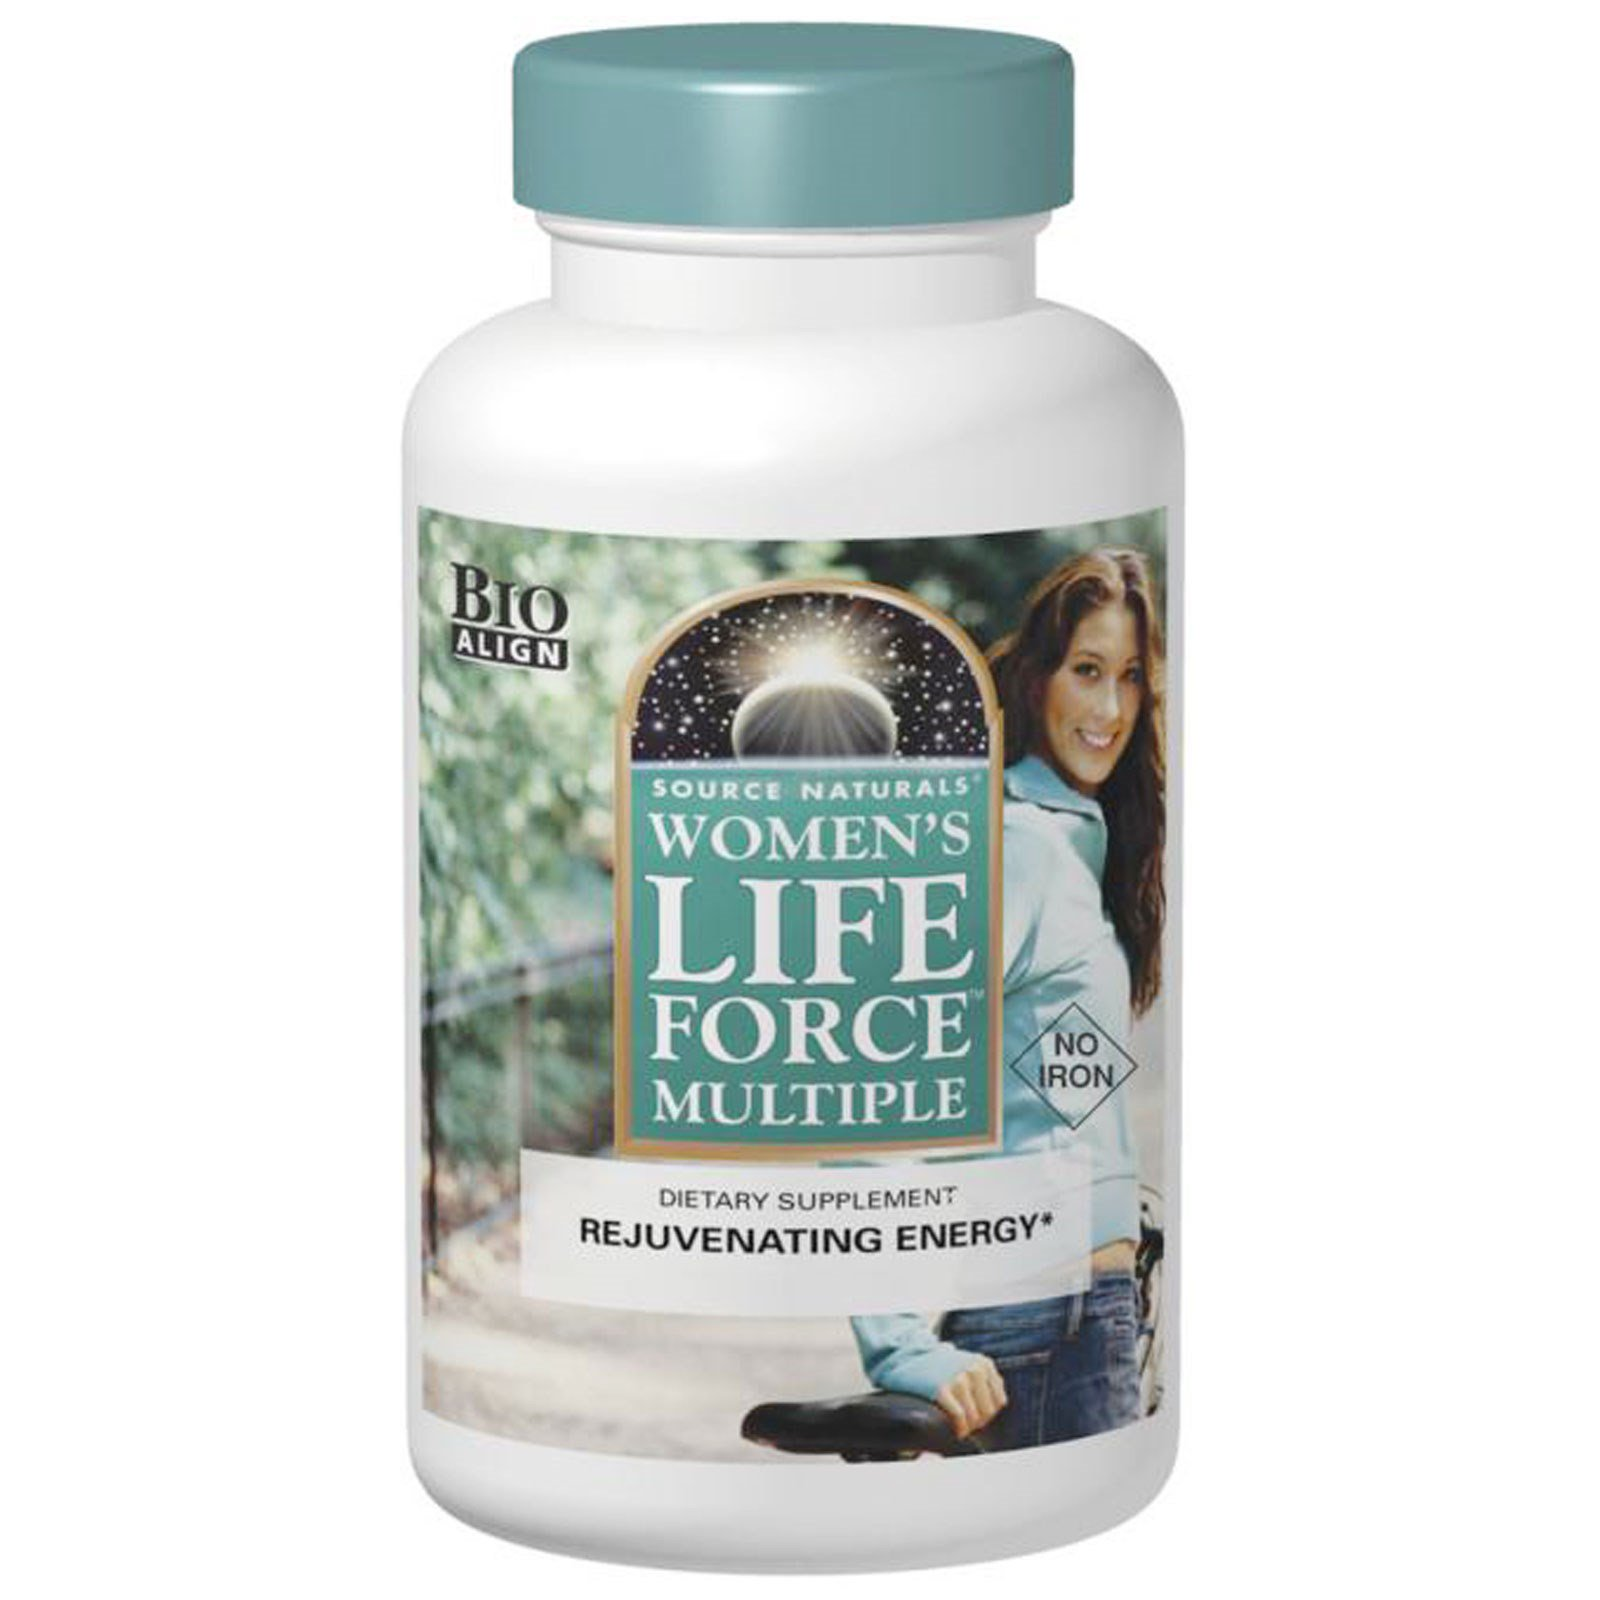 Source Naturals, Women's Life Force Multiple, без железа, 180 таблеток